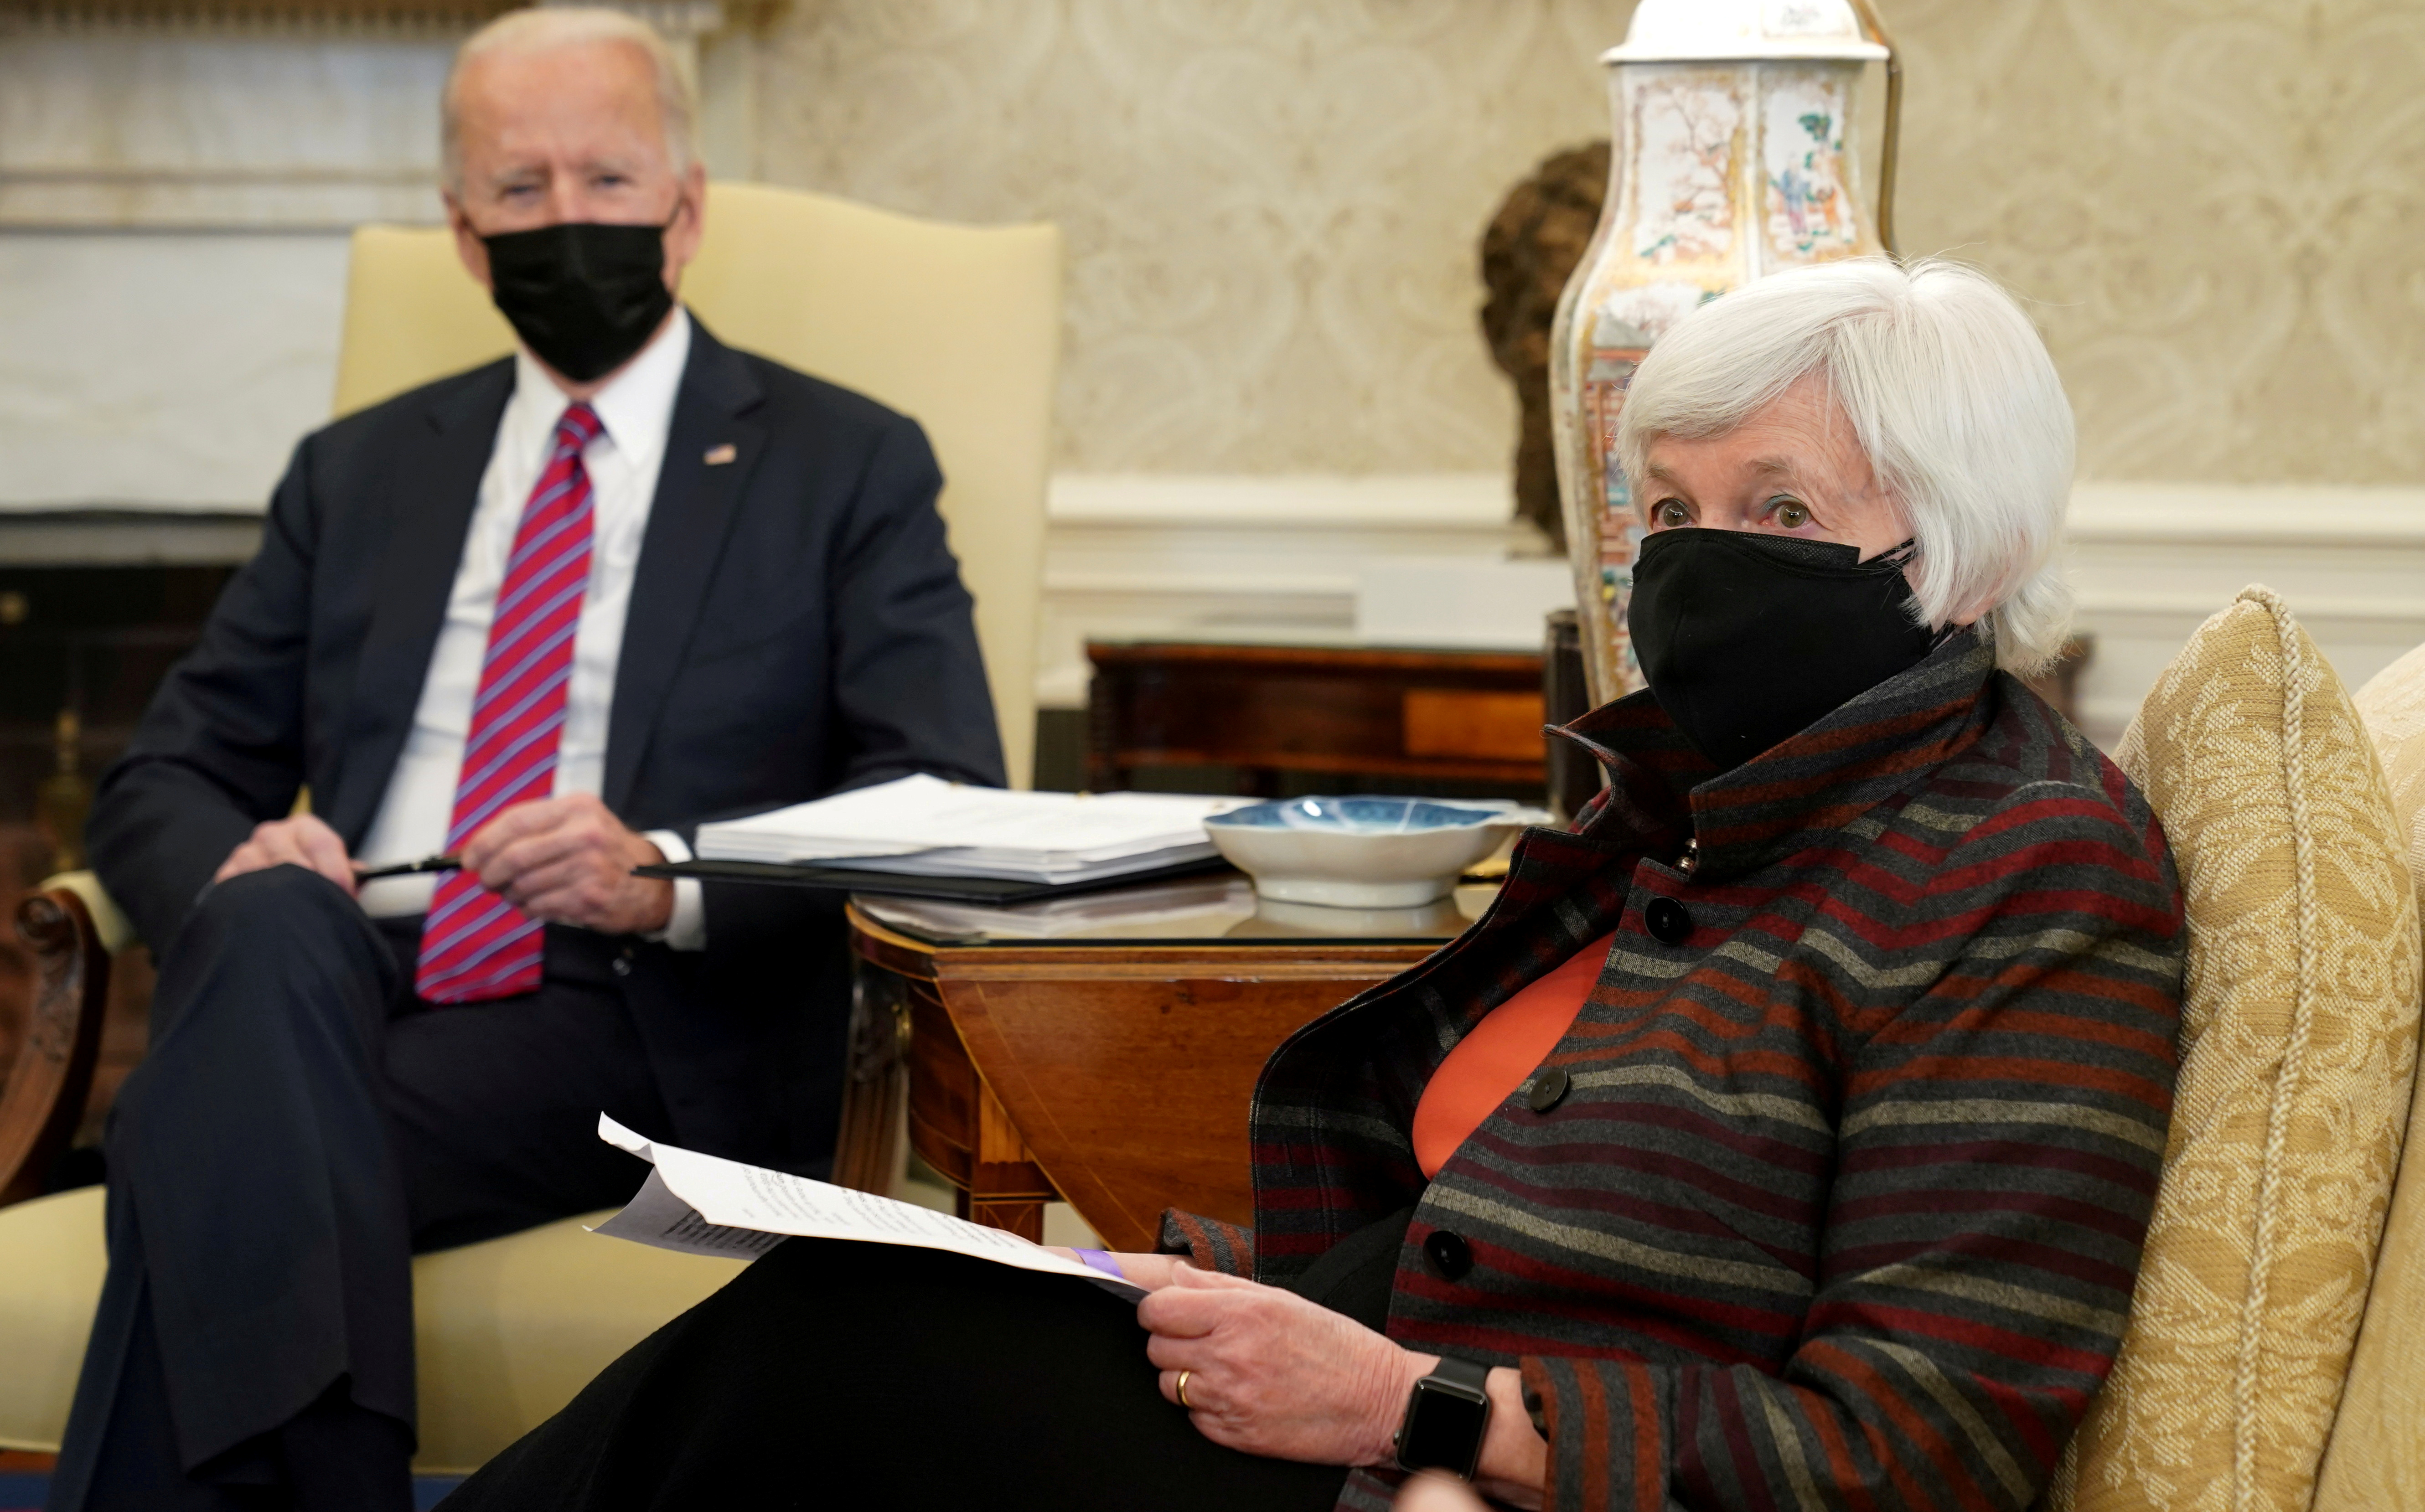 U.S. President Joe Biden meets with Treasury Secretary Janet Yellen in the Oval Office at the White House in Washington, U.S., January 29, 2021. REUTERS/Kevin Lamarque/File Photo